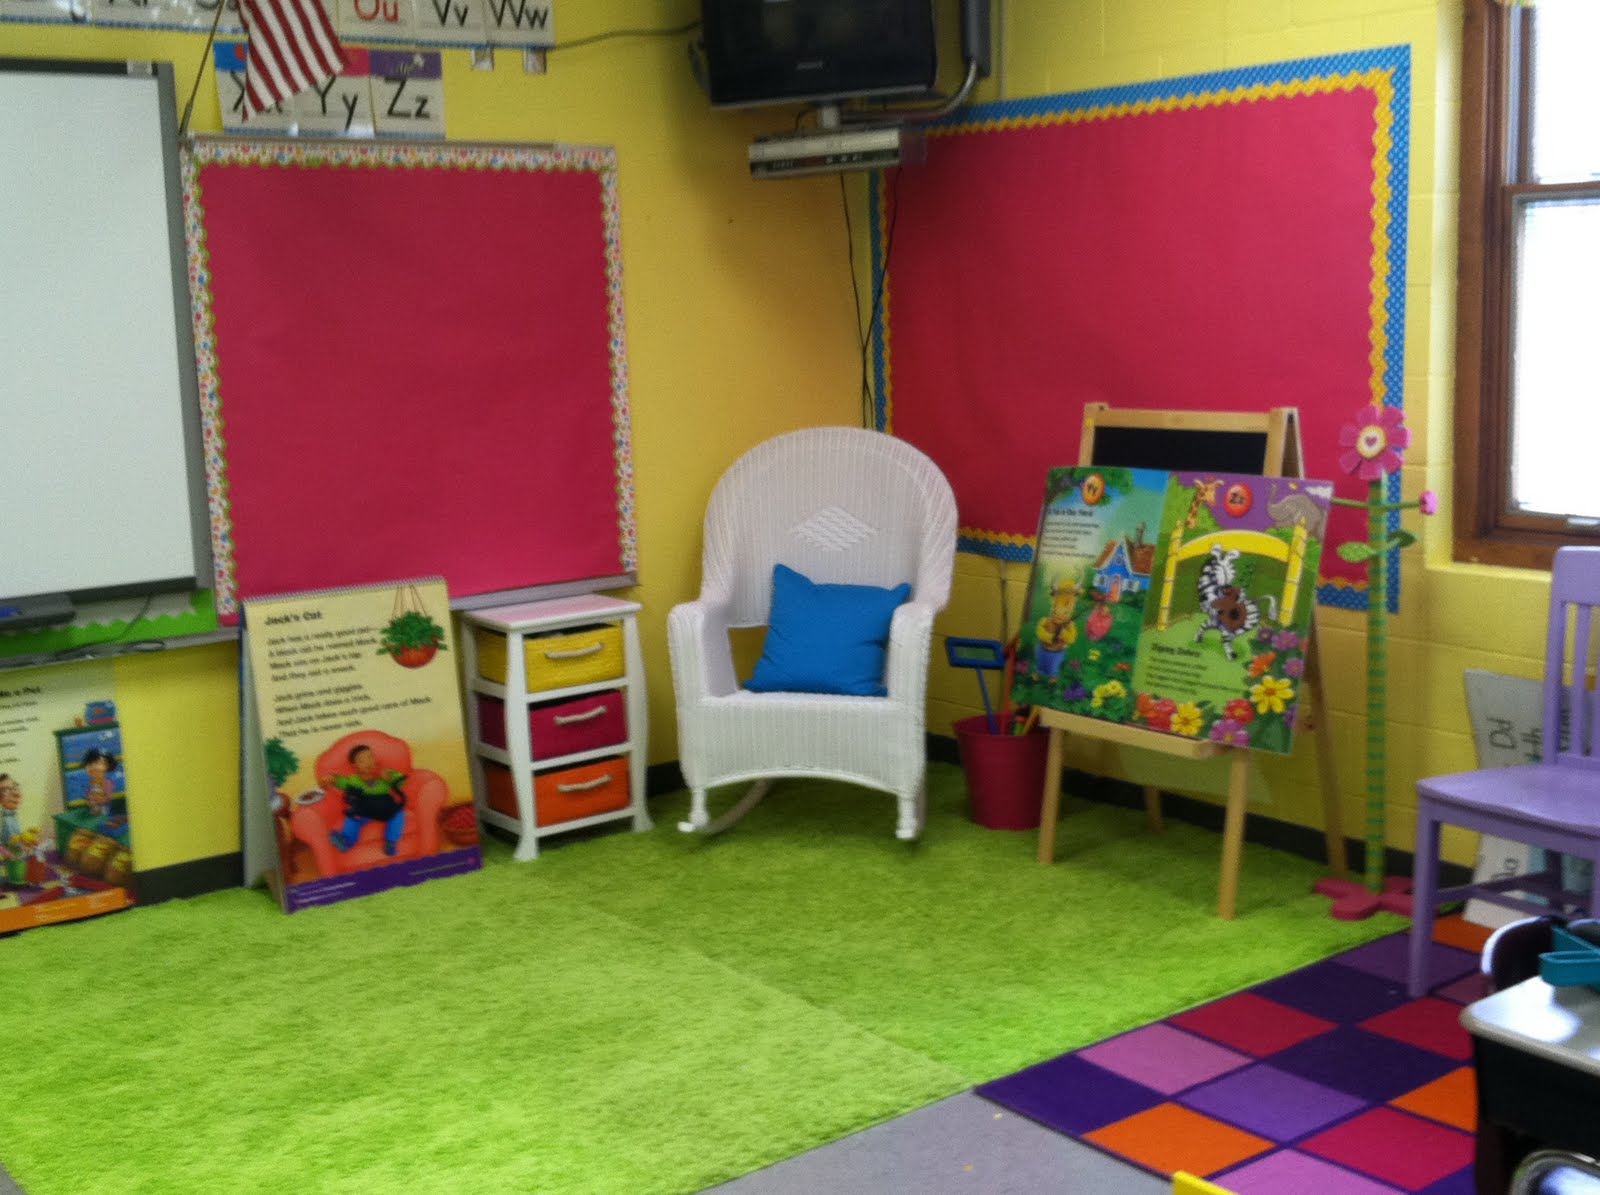 Creative Classroom Decoration For Kindergarten : Creative preschool classroom design home decorating ideas